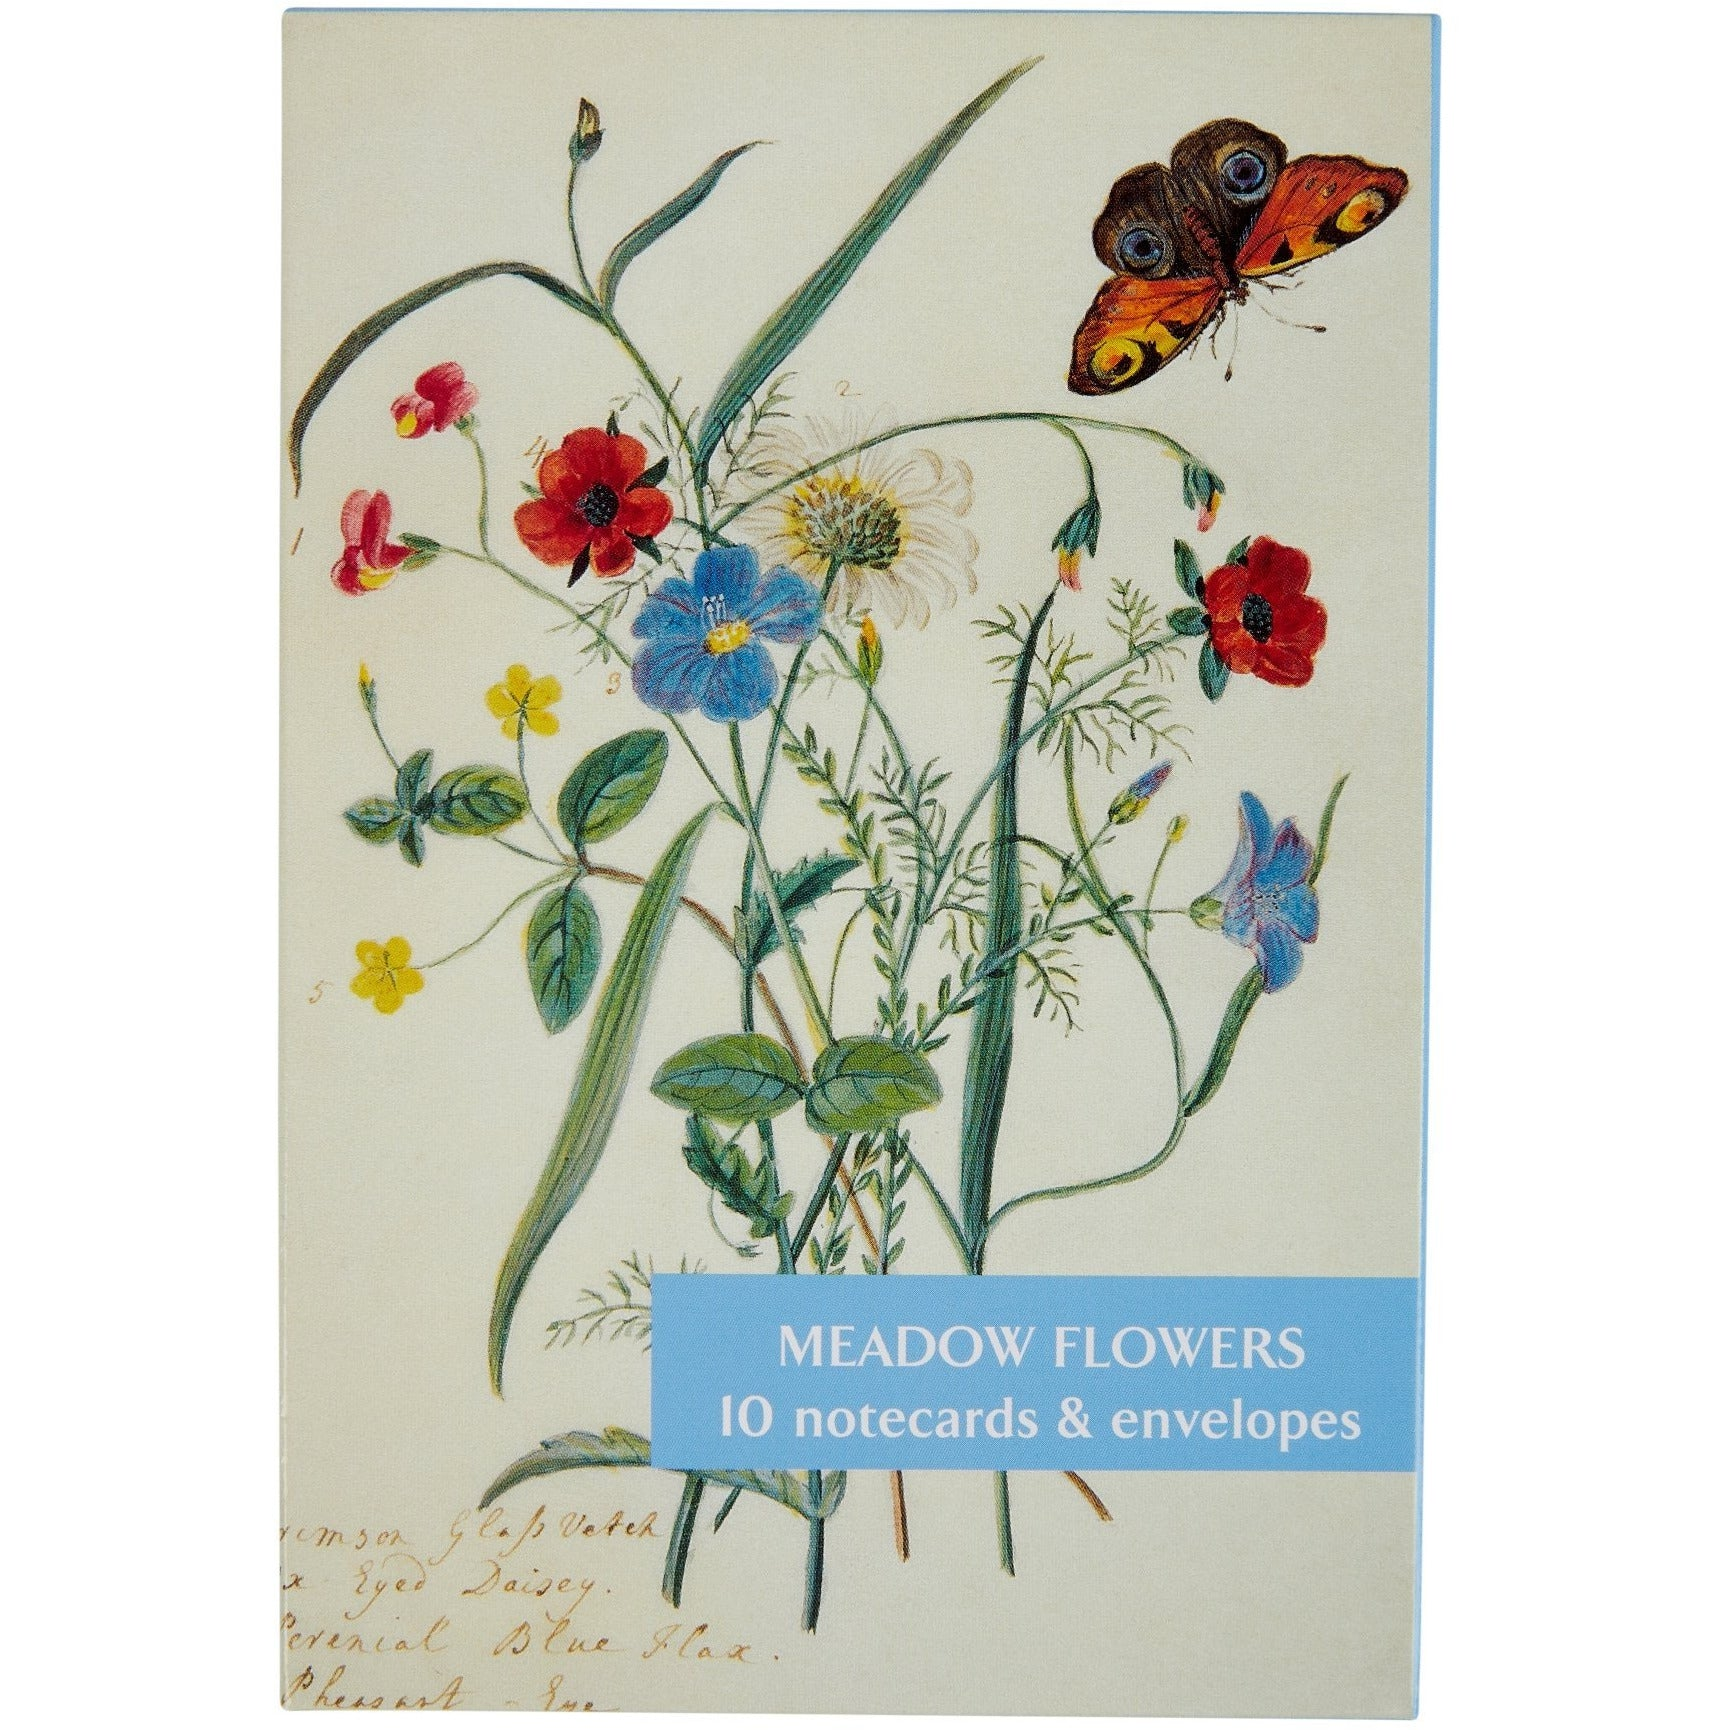 Featured image for the project: Meadow Flowers - Notecard pack